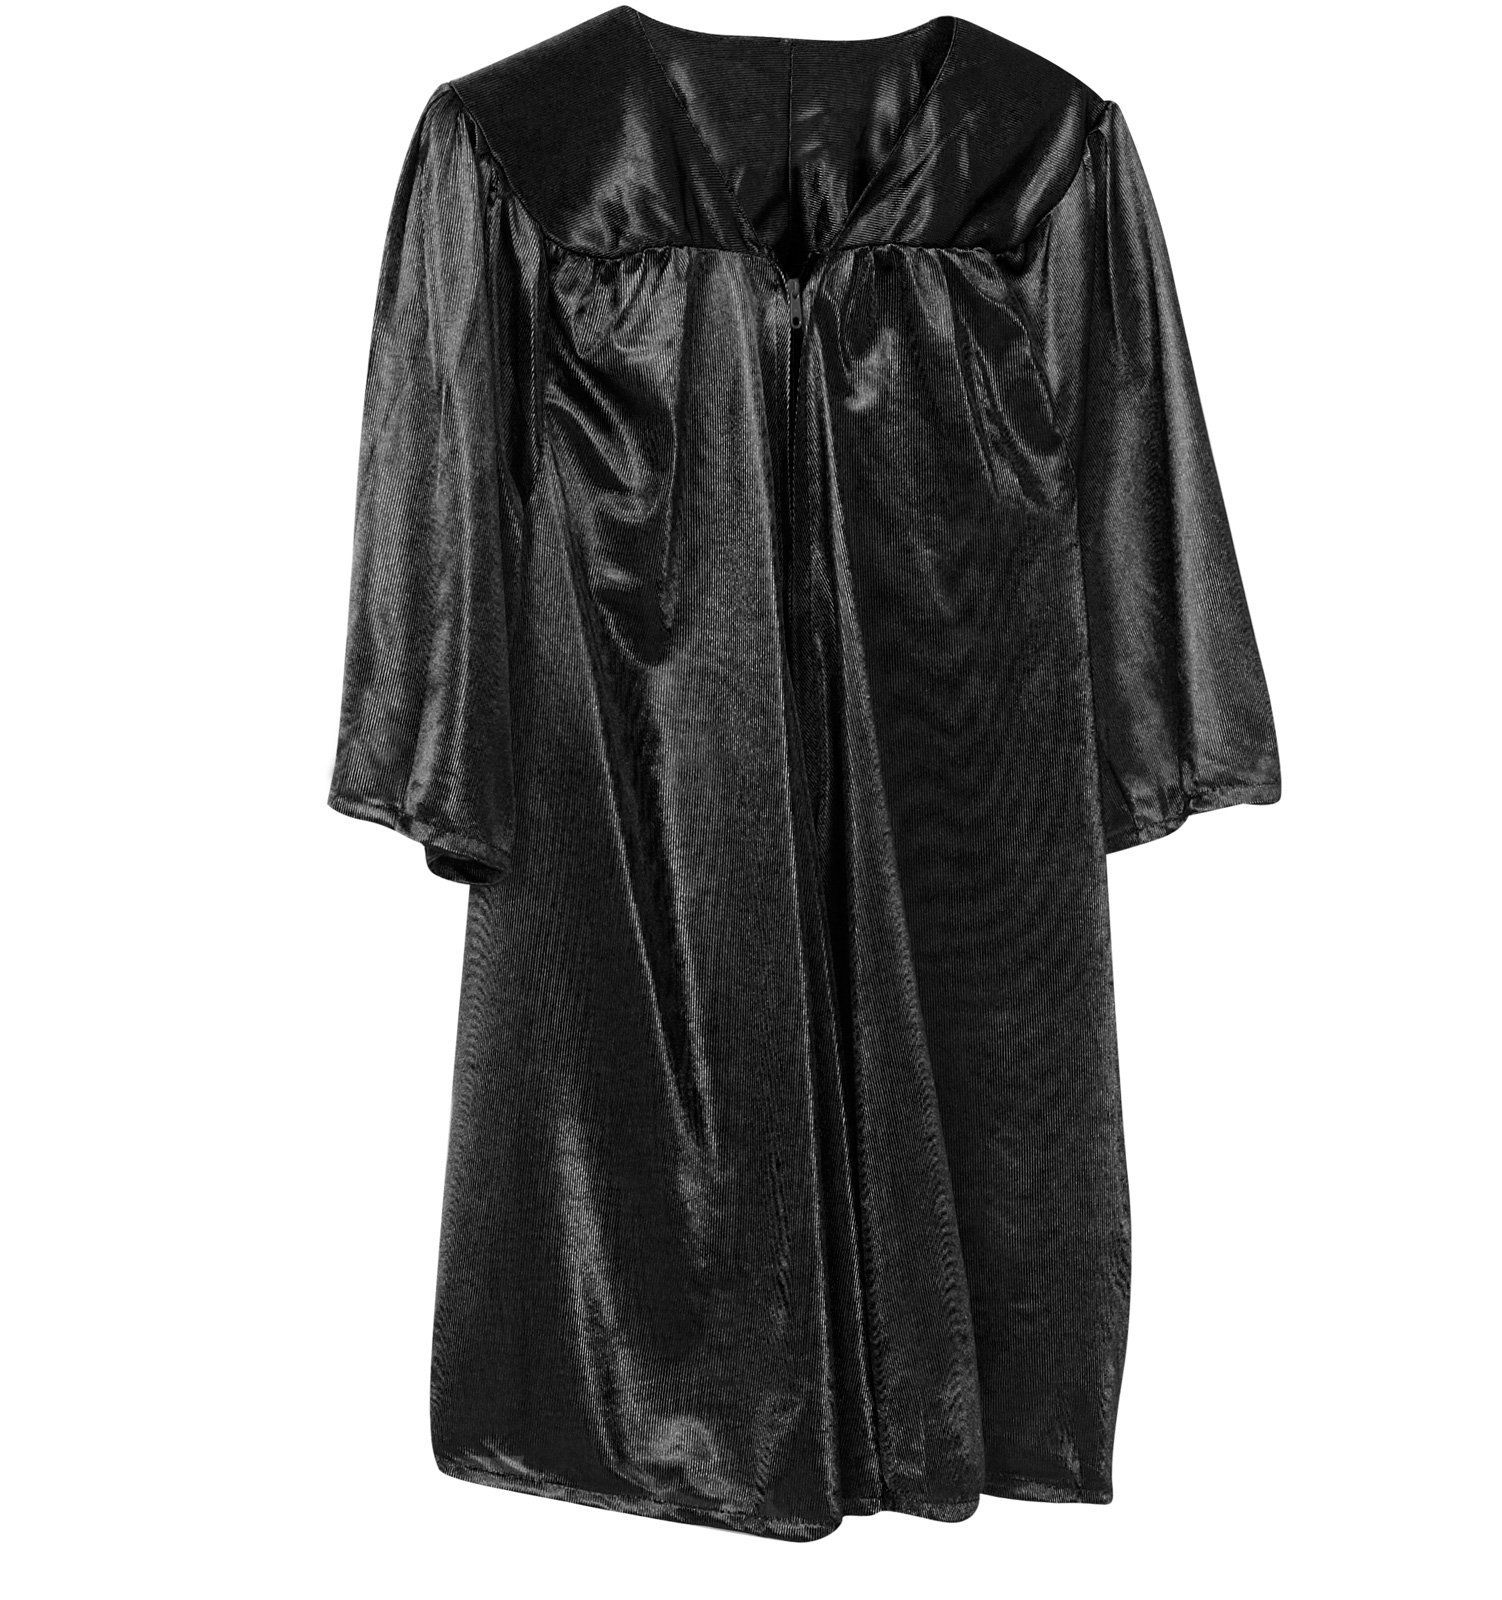 Kids Graduation Gown - up to 8 years (Black) | Space pirates | Pinterest